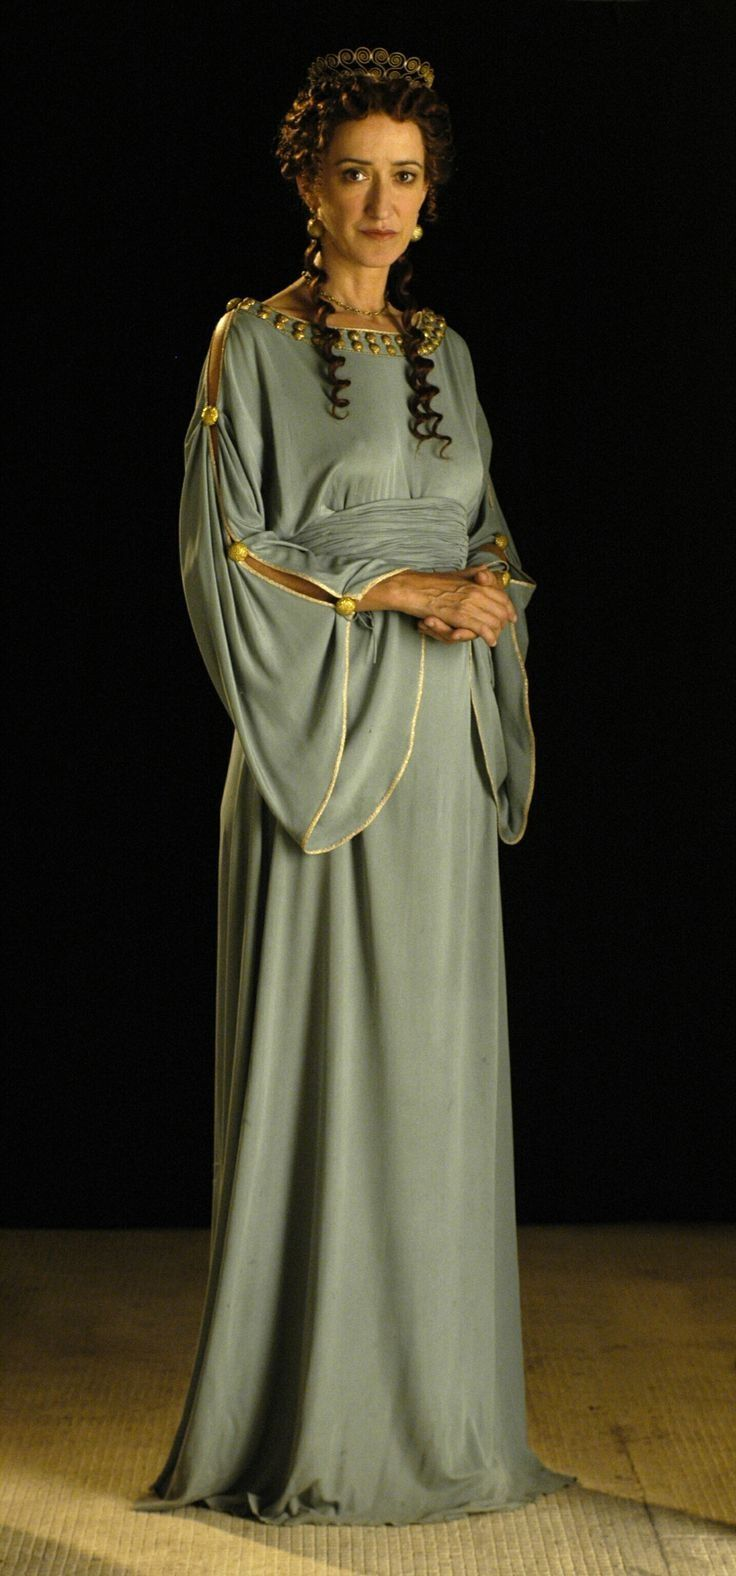 A High Class Roman gown, made of finer fabric such as linen                                                                                                                                                      More